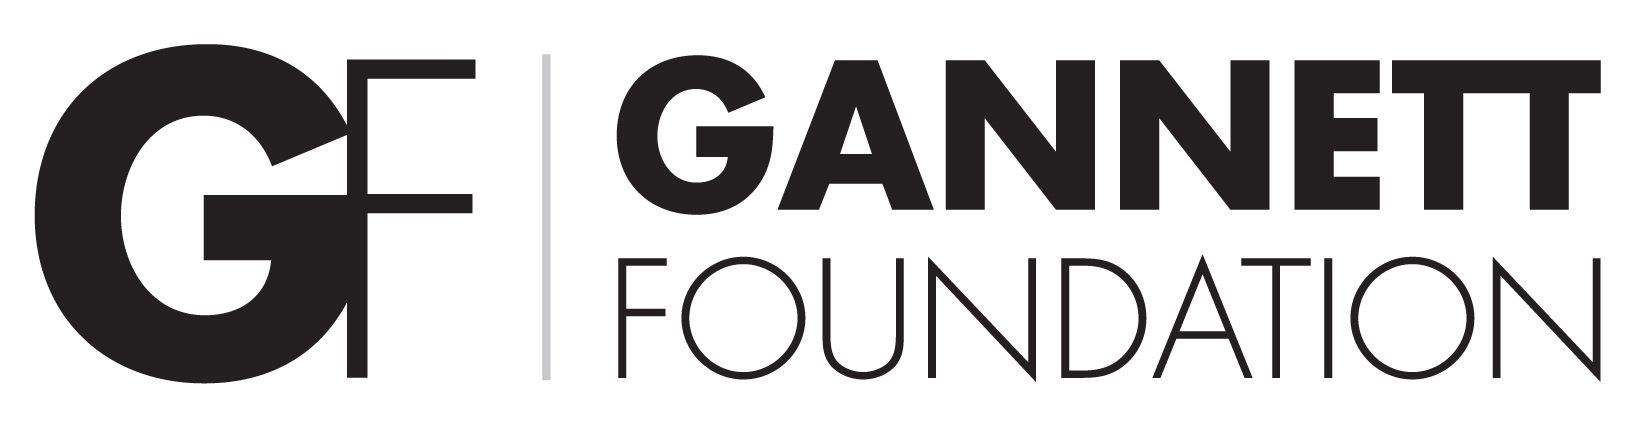 Mid Devon Star: Gannett Foundation Logo Downloaded from http://www.gannettfoundation.org/faqs.htm (33174819)